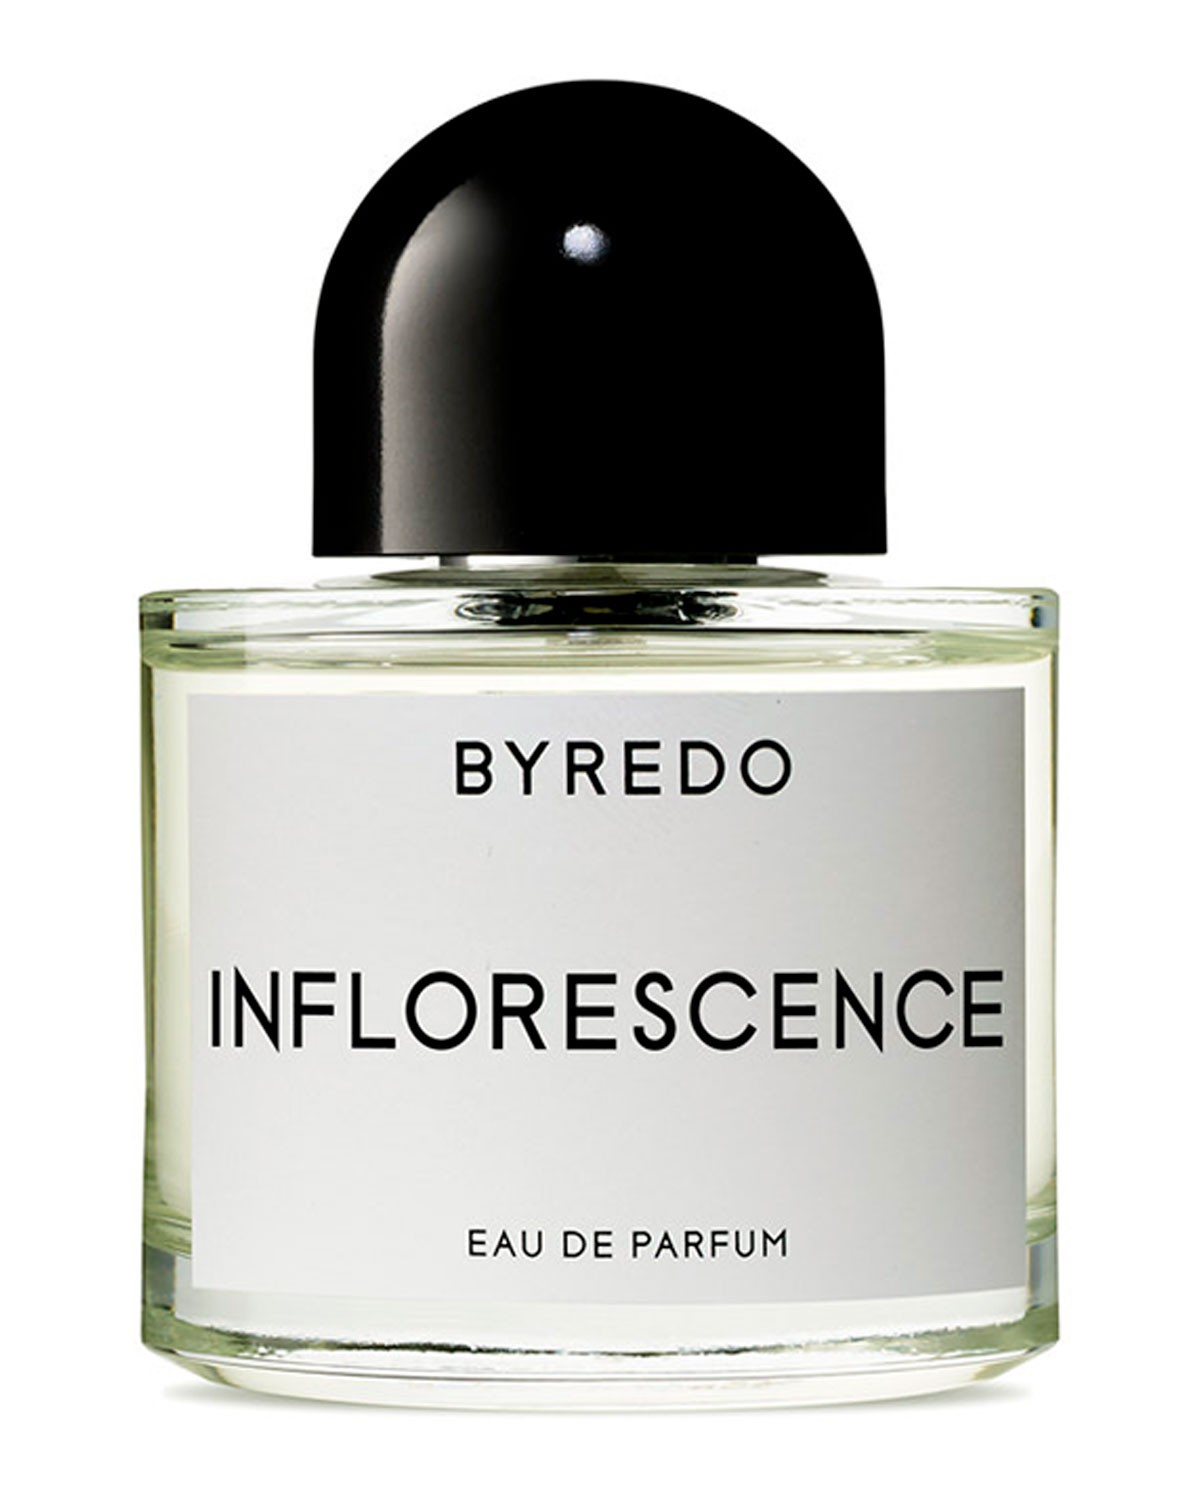 Inflorescence Eau de Parfum, 100 mL - Byredo - Red